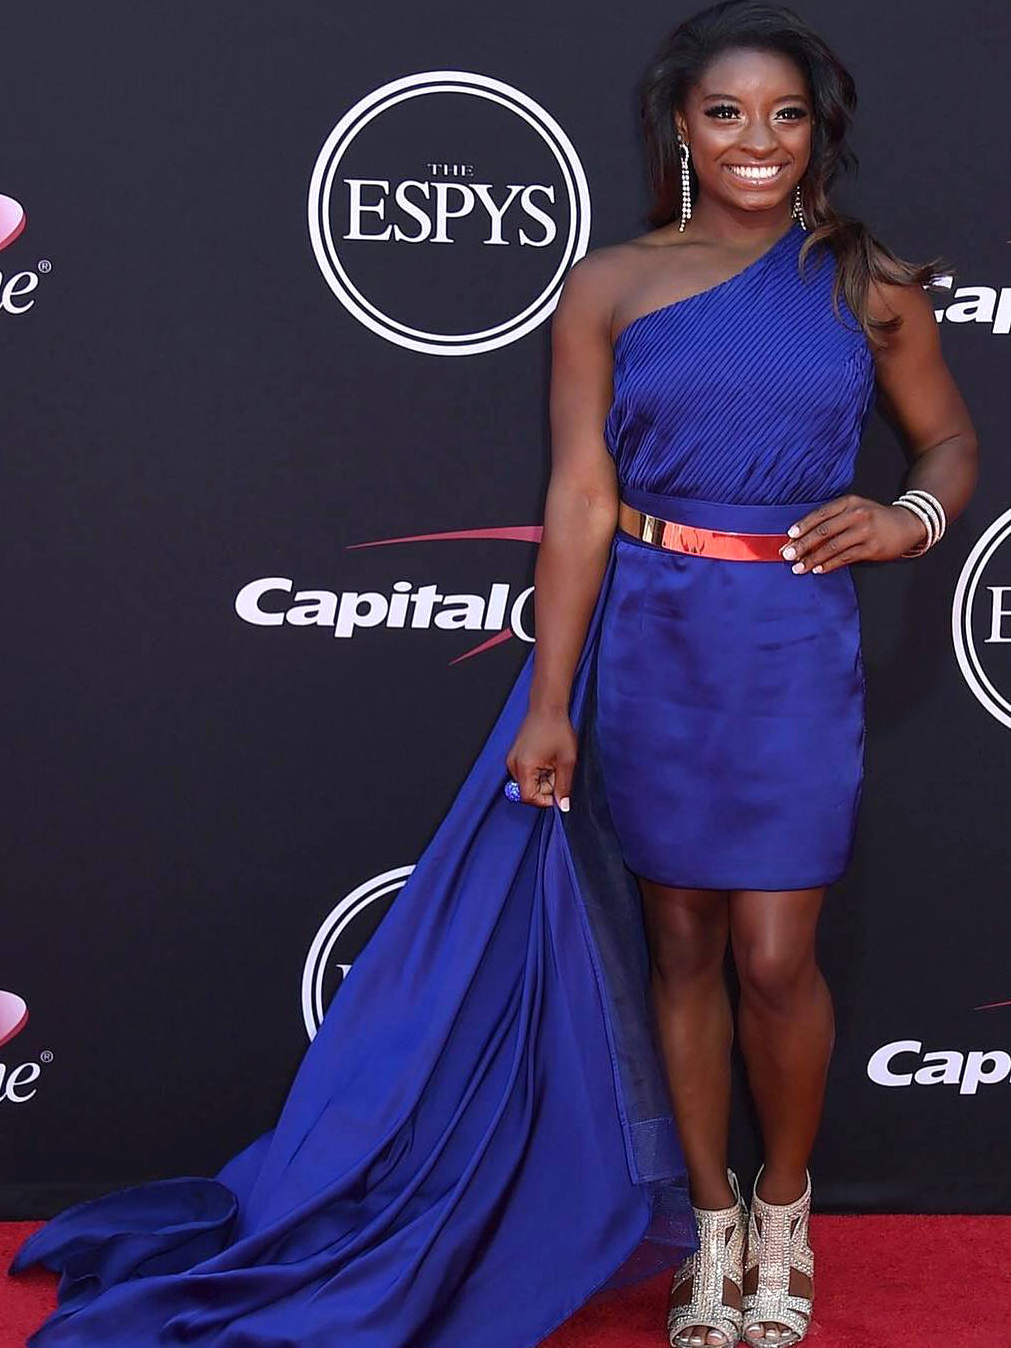 Houston, 2017 ESPY awards, Simone Biles, July 2017